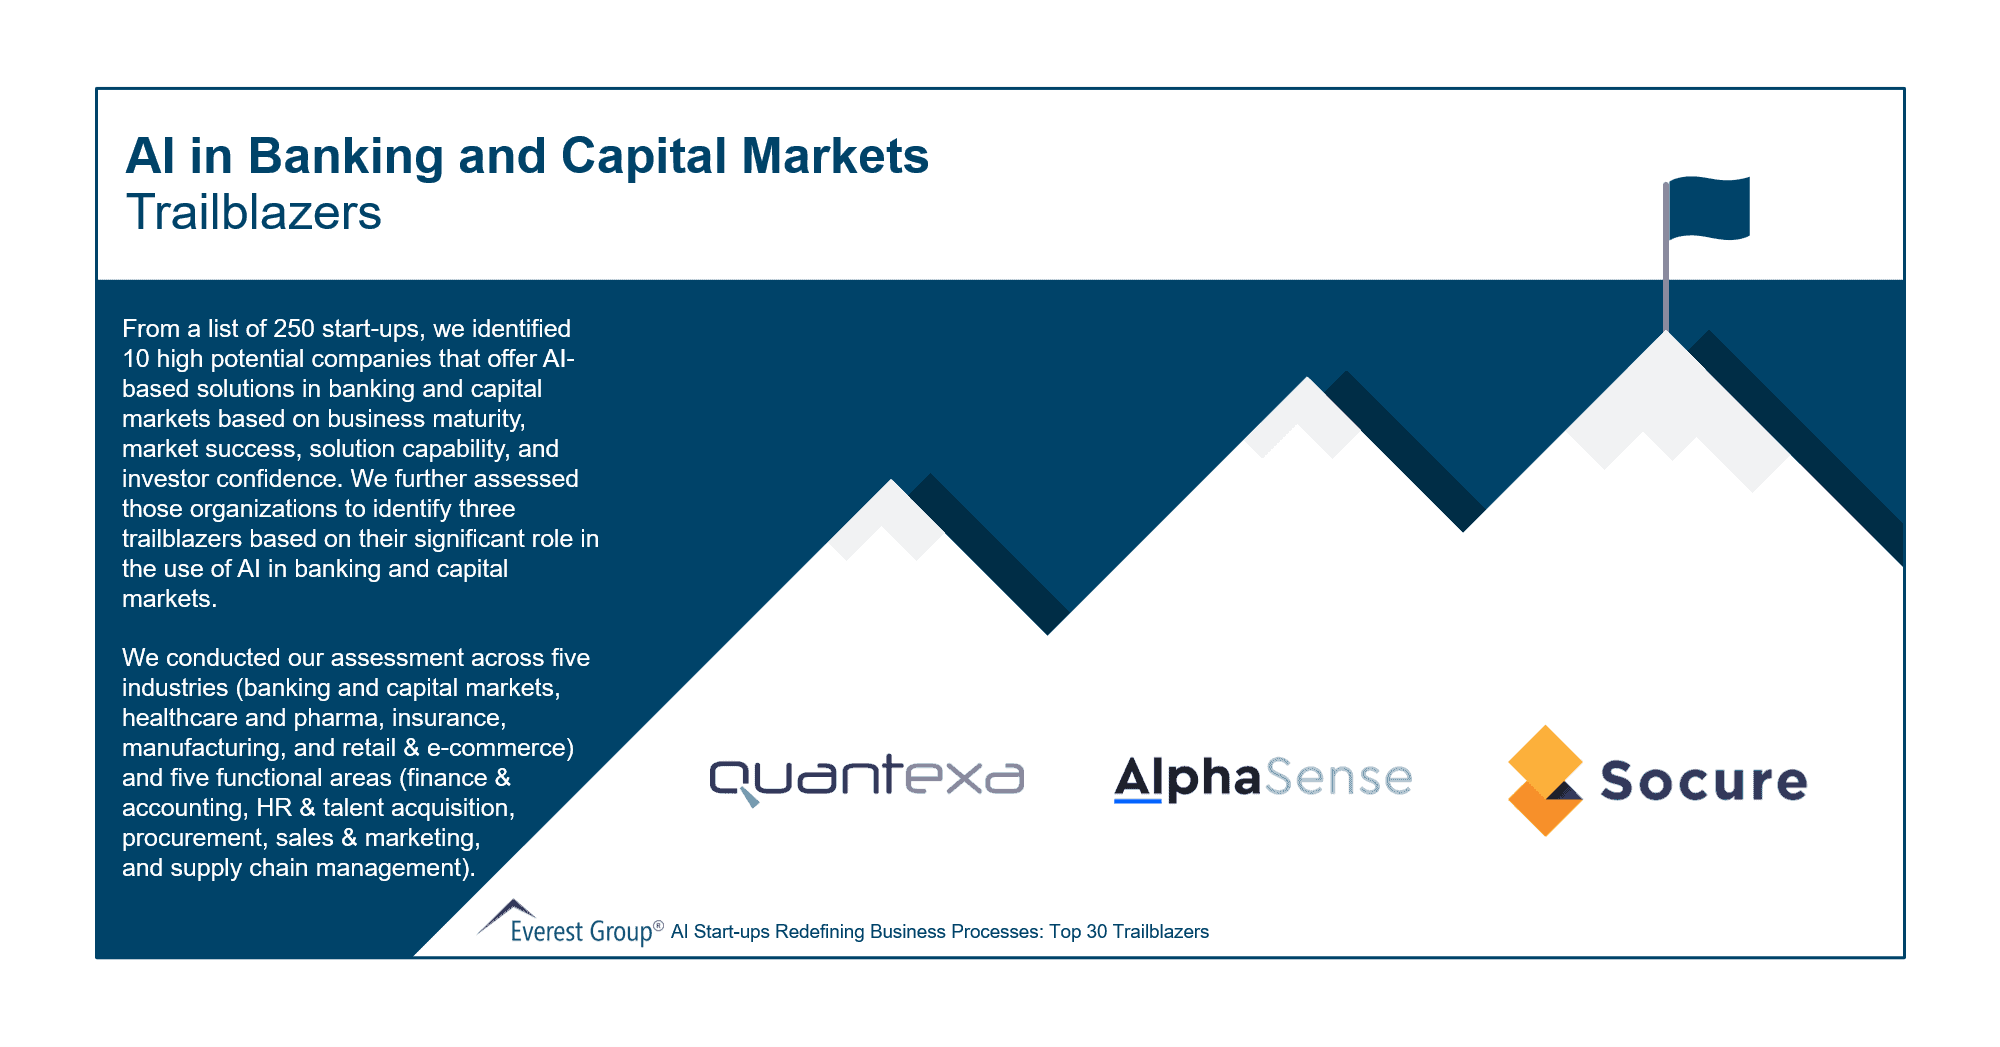 Trailblazers in AI in Banking and Capital Markets